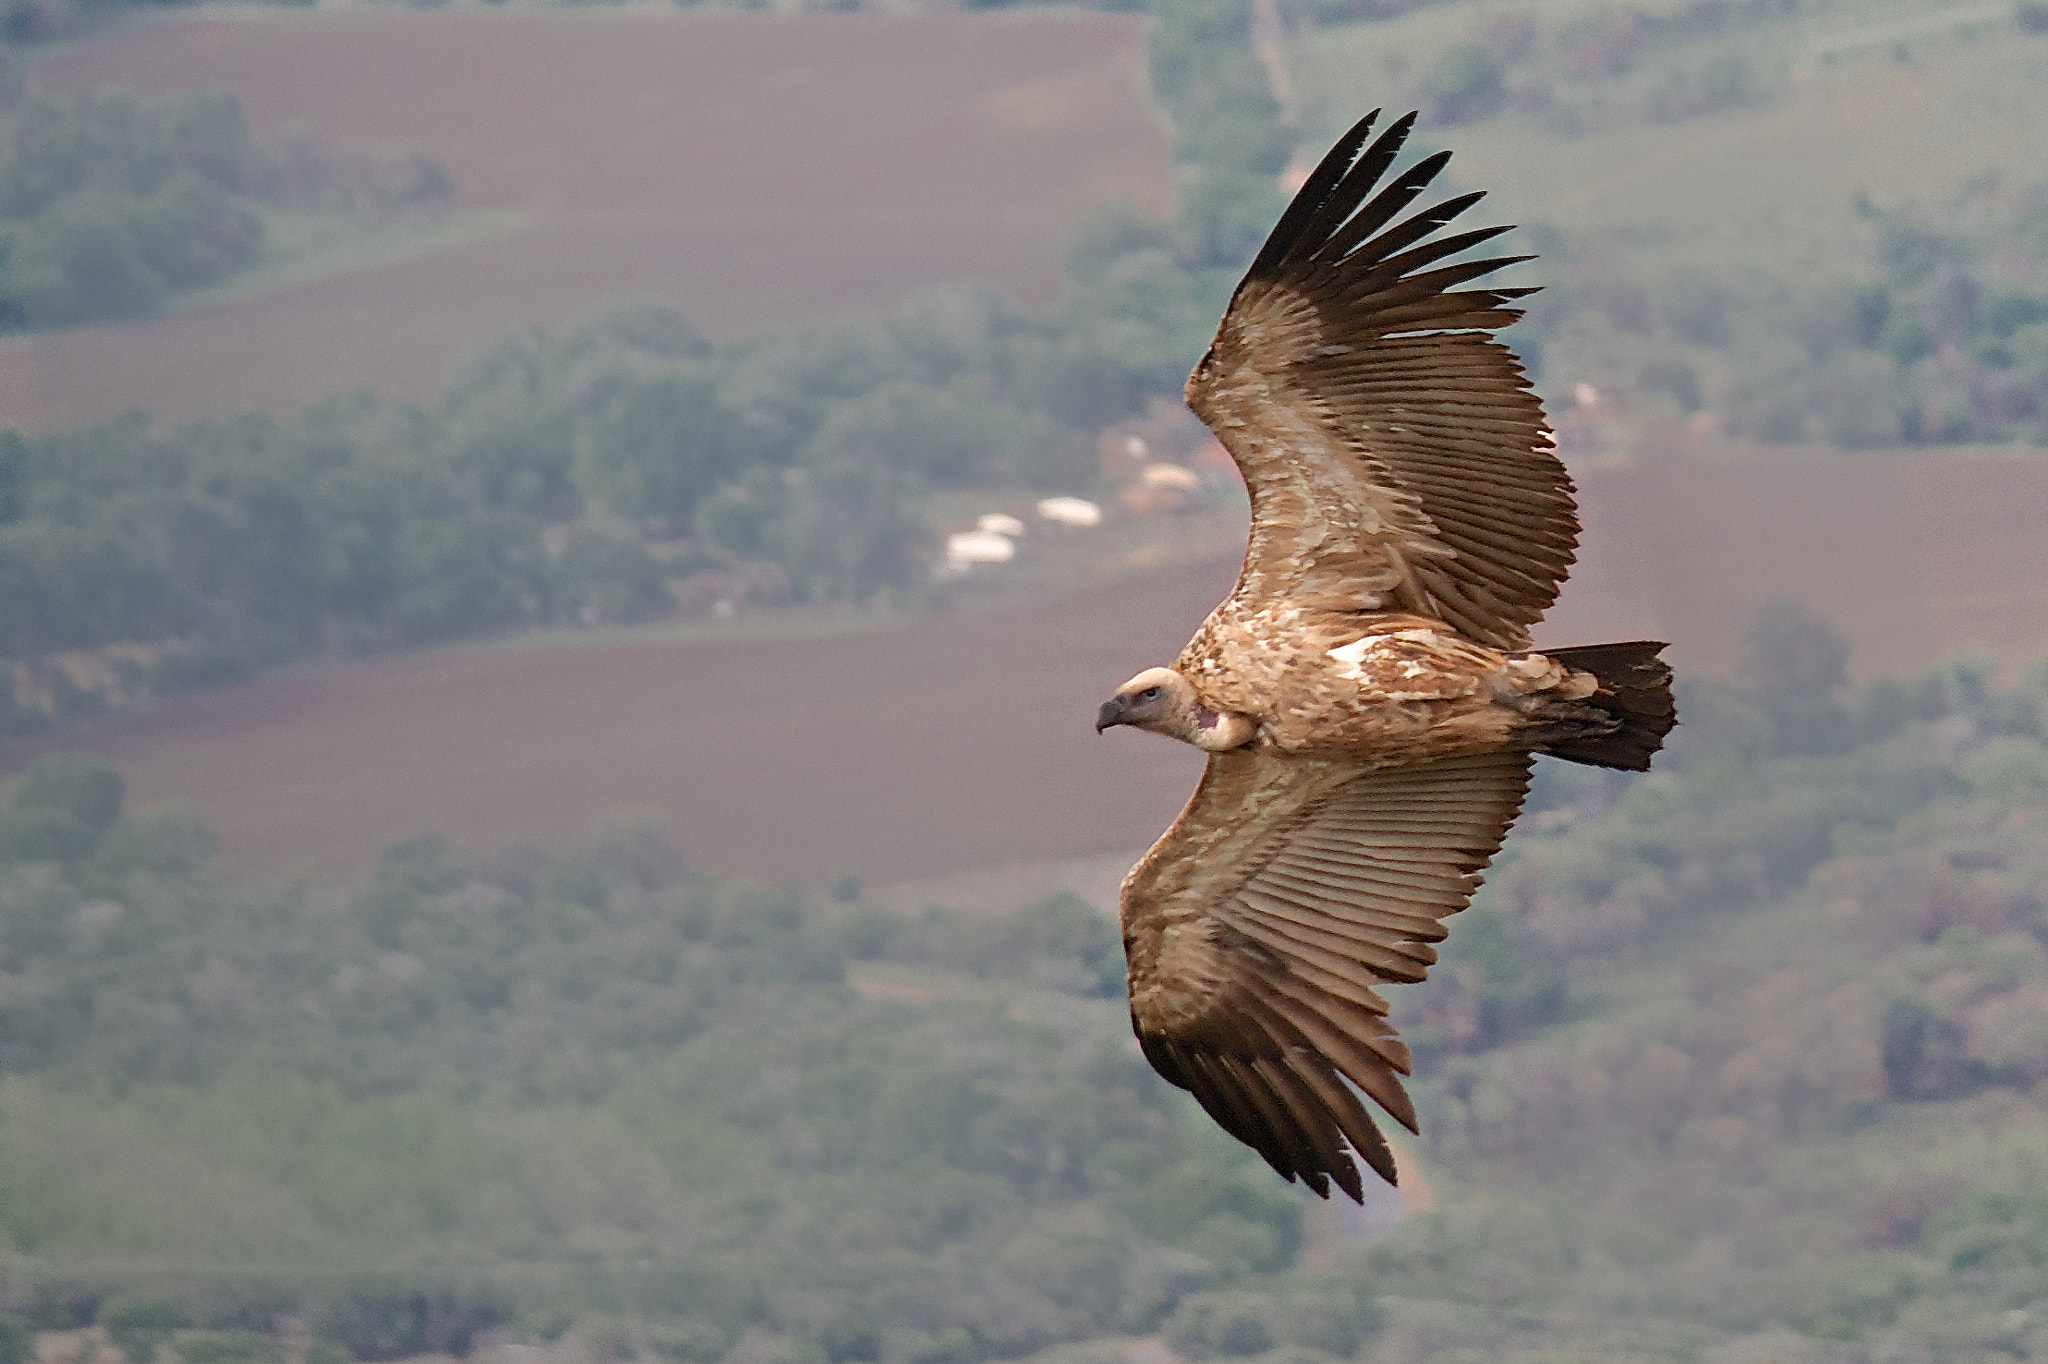 Photograph Banking Turn - Cape Vulture by Chris vd Merwe on 500px